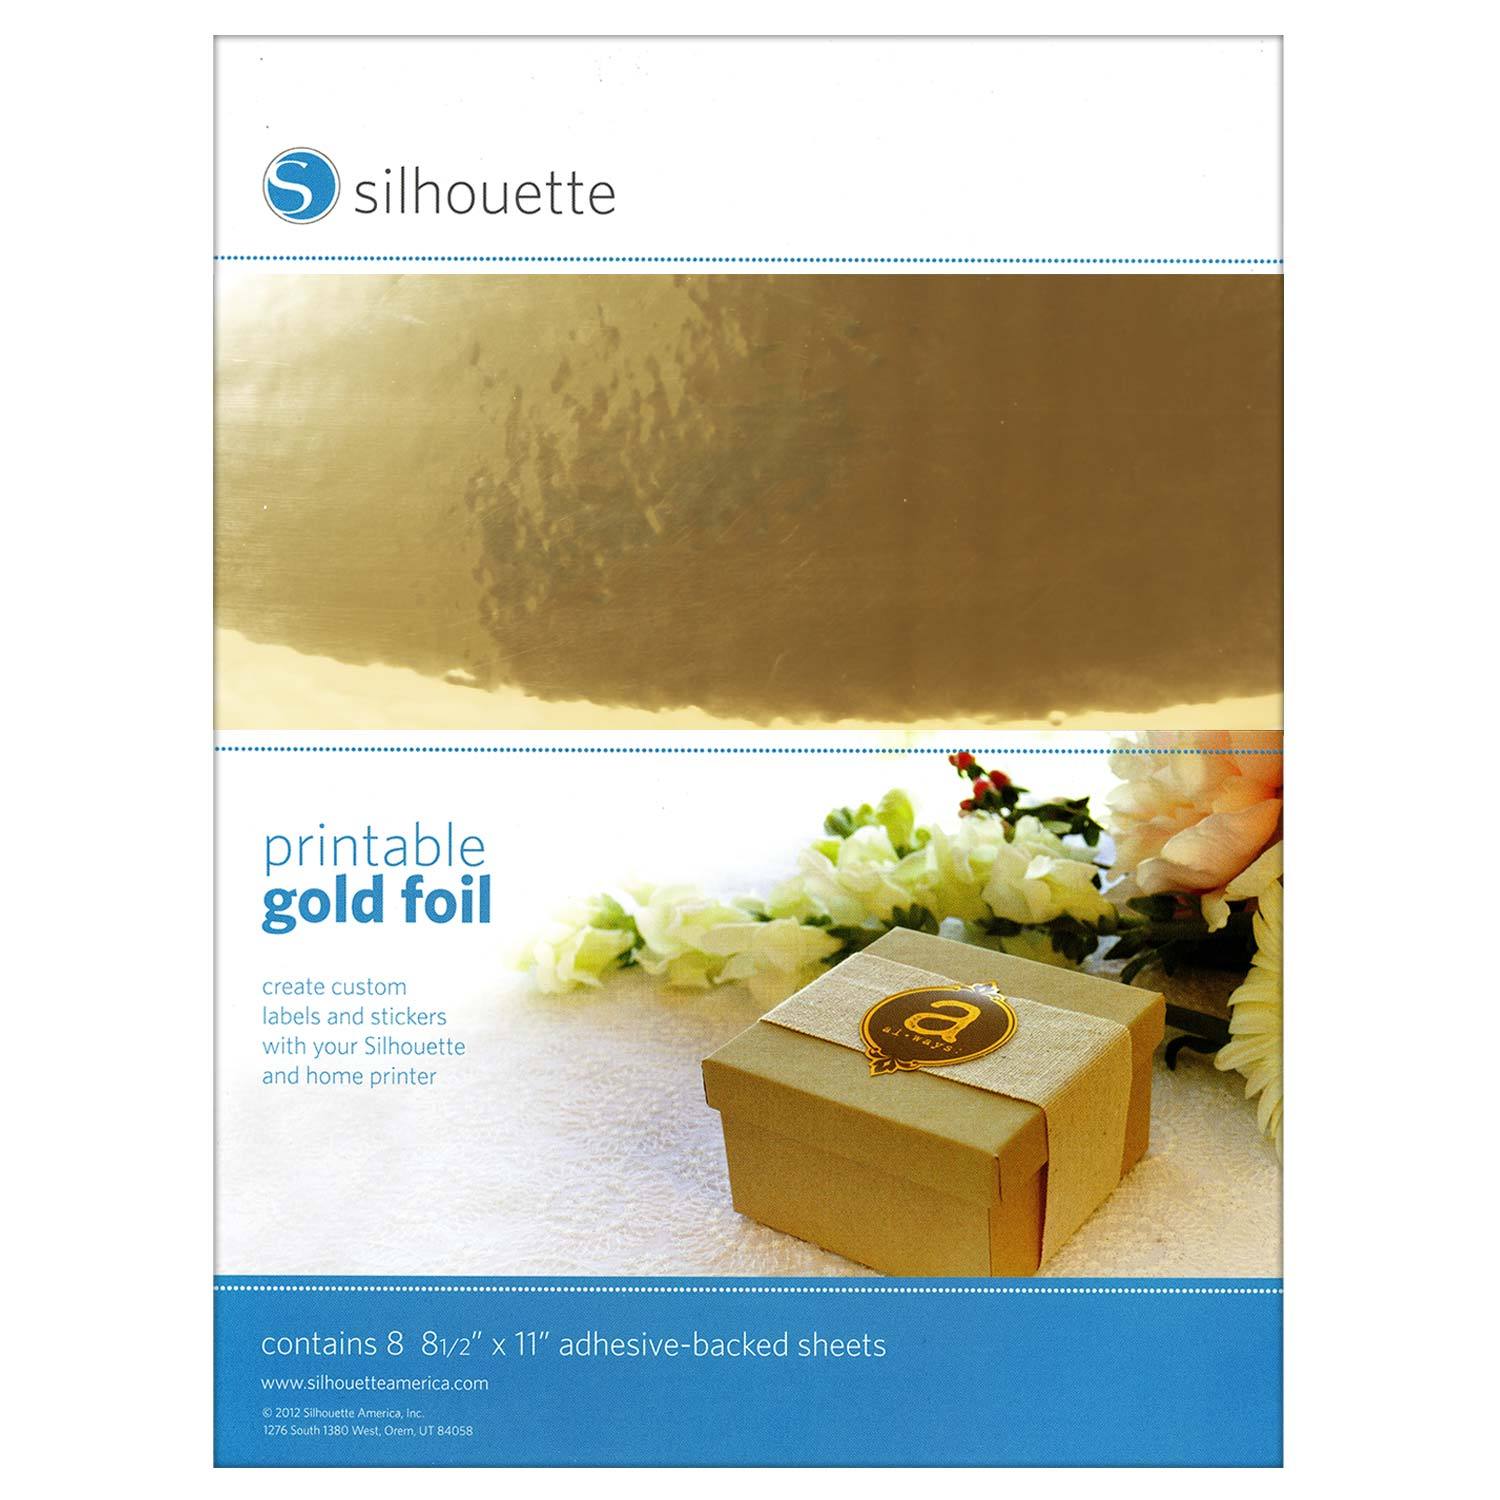 photograph about Printable Gold Foil named Silhouette Printable Gold Foil